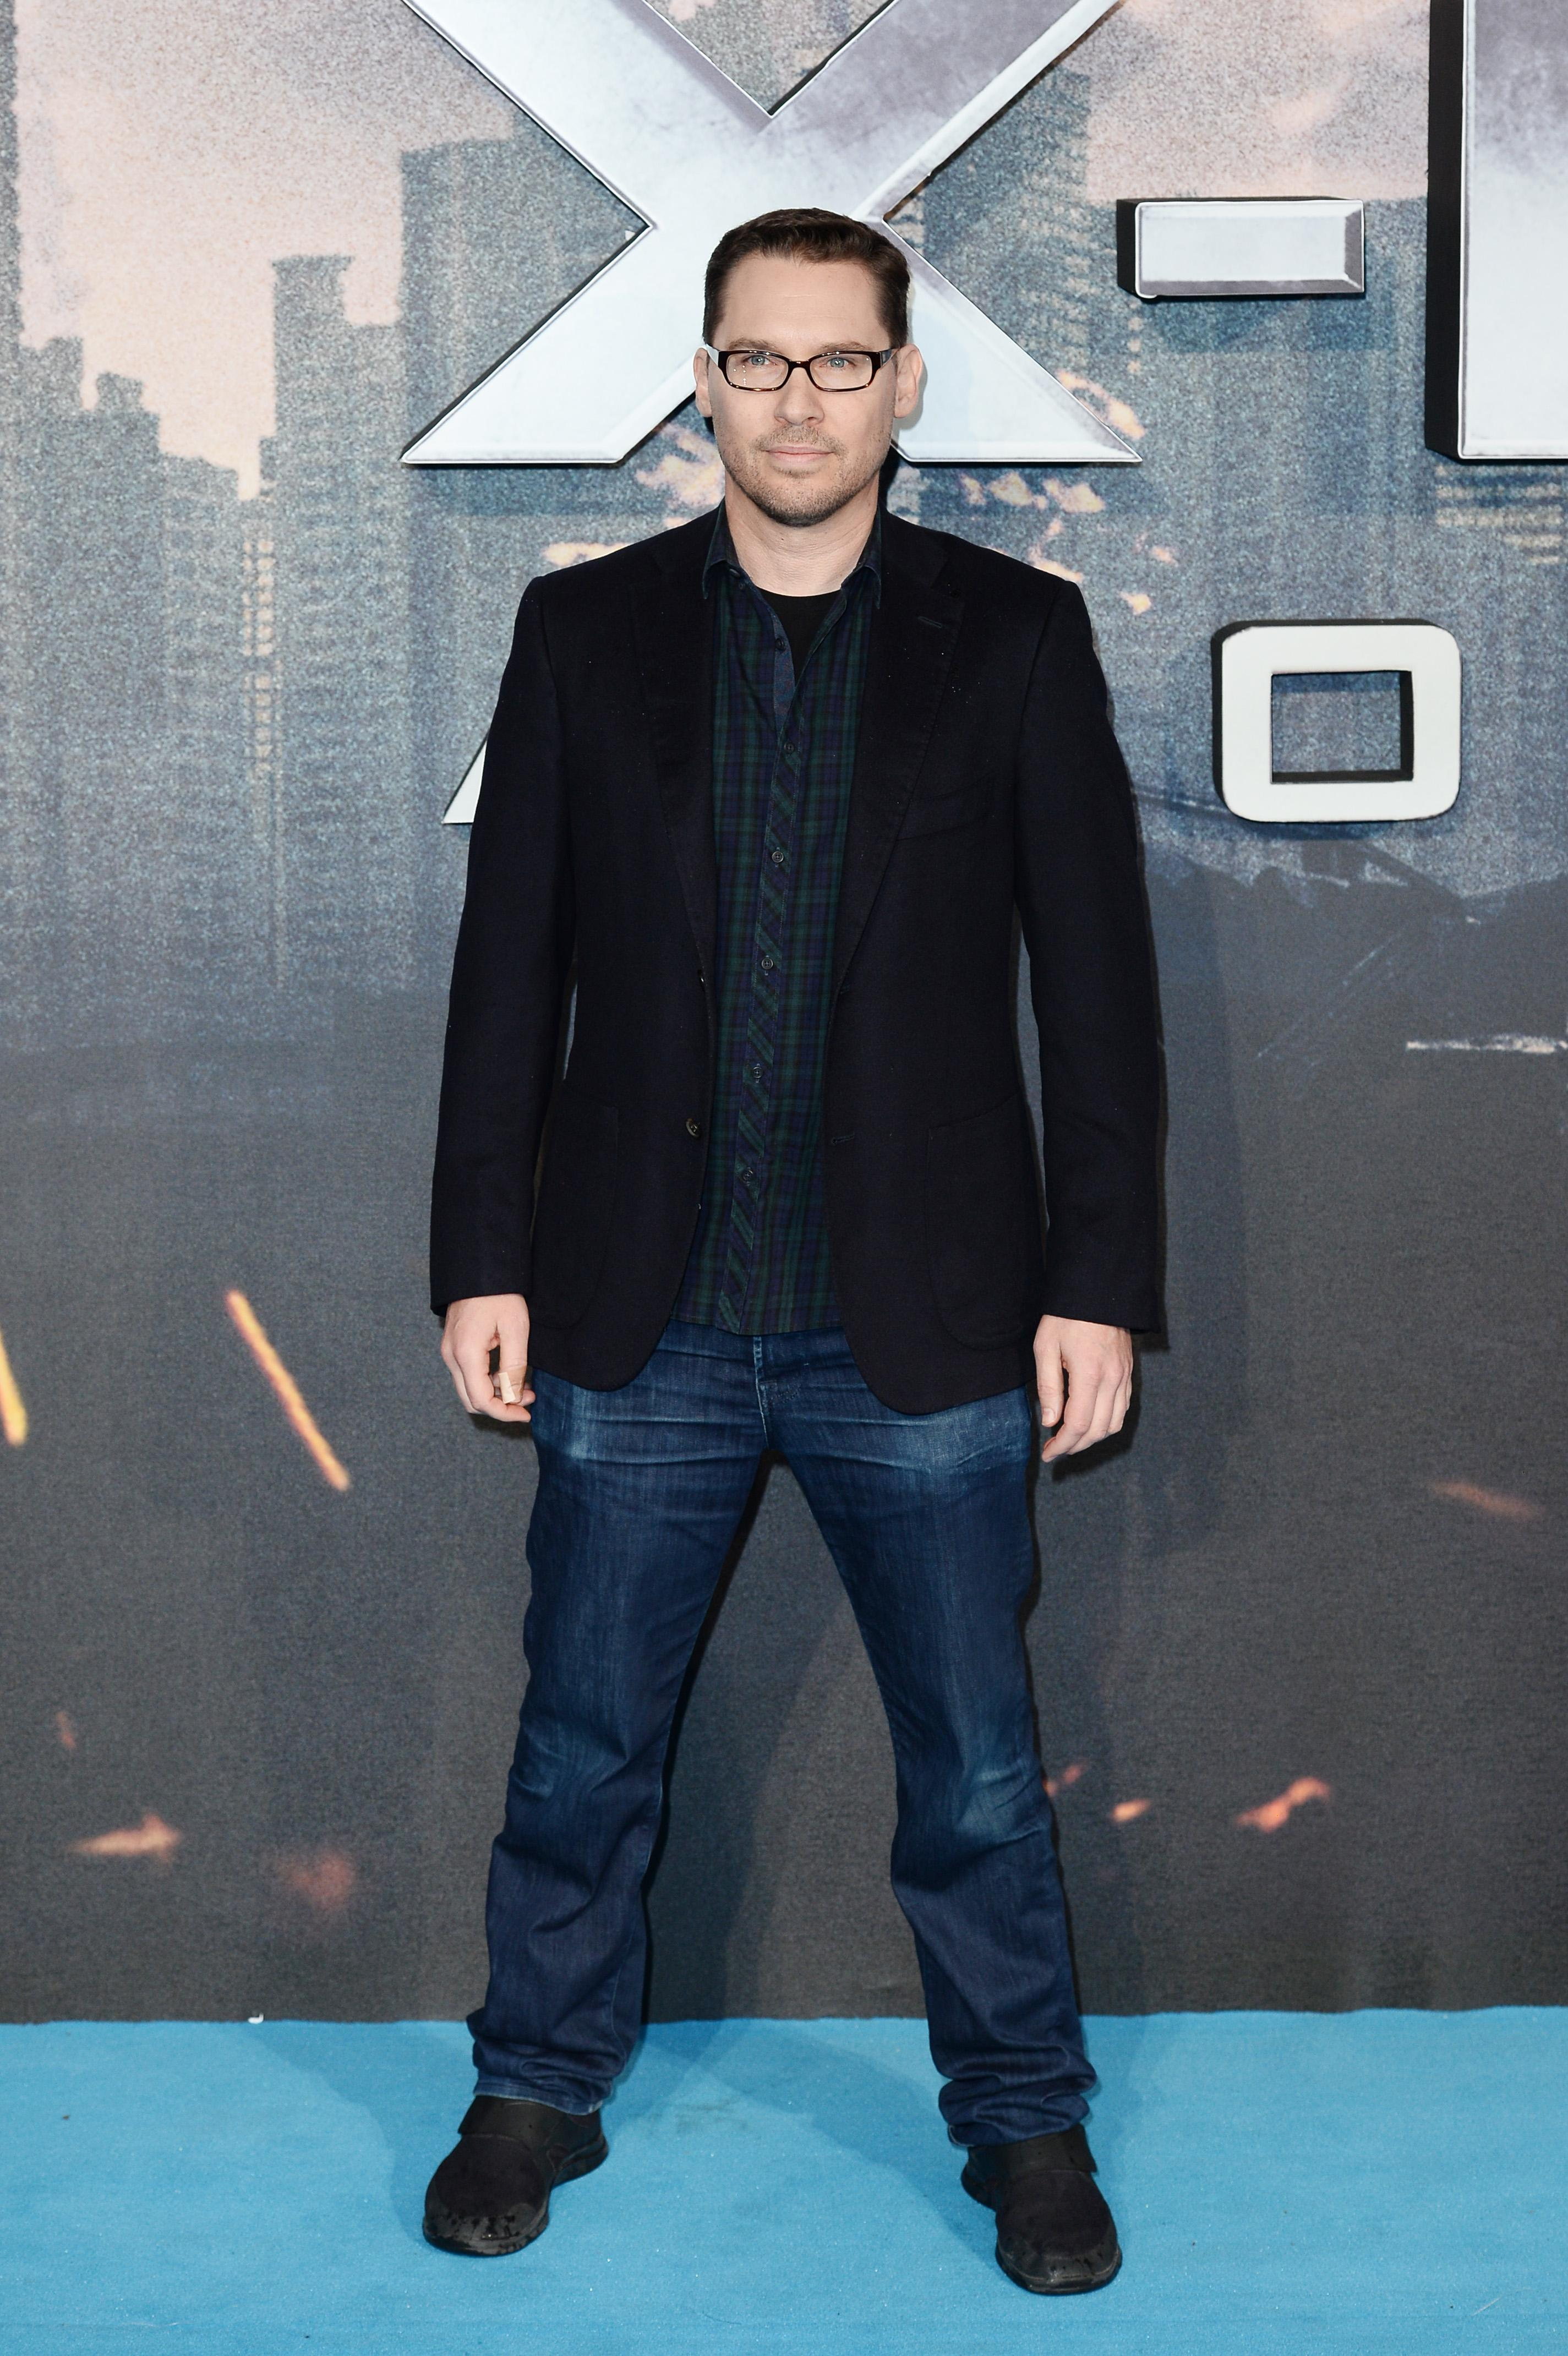 Man poses for photos at film premiere.